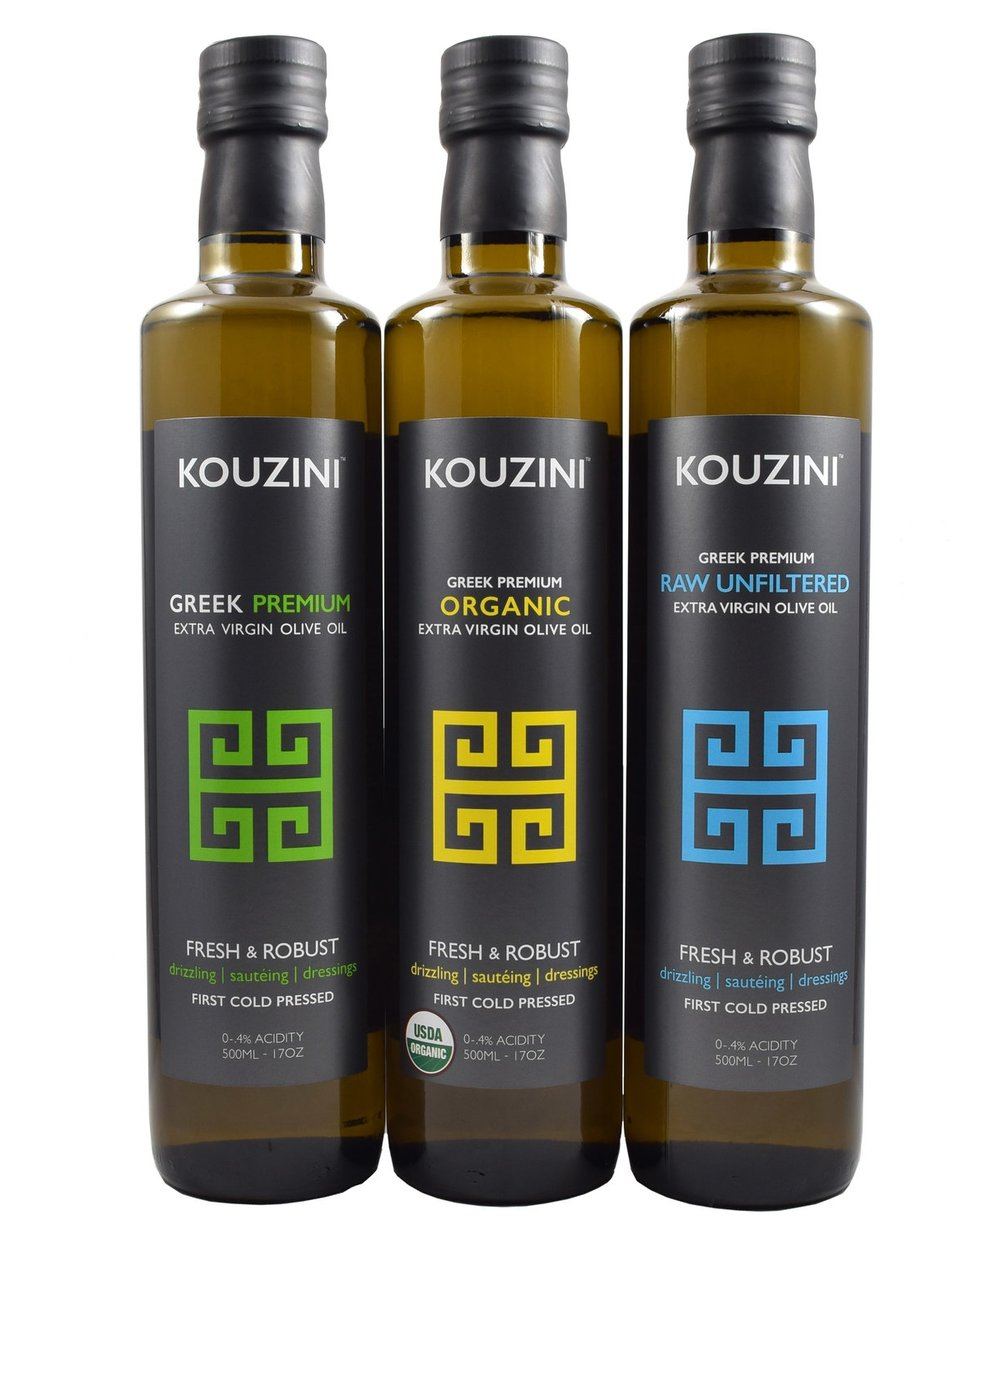 Kouzini organic Ultra Premium extra virgin olive oils. Our olive oil is certified organic and nongmo verified